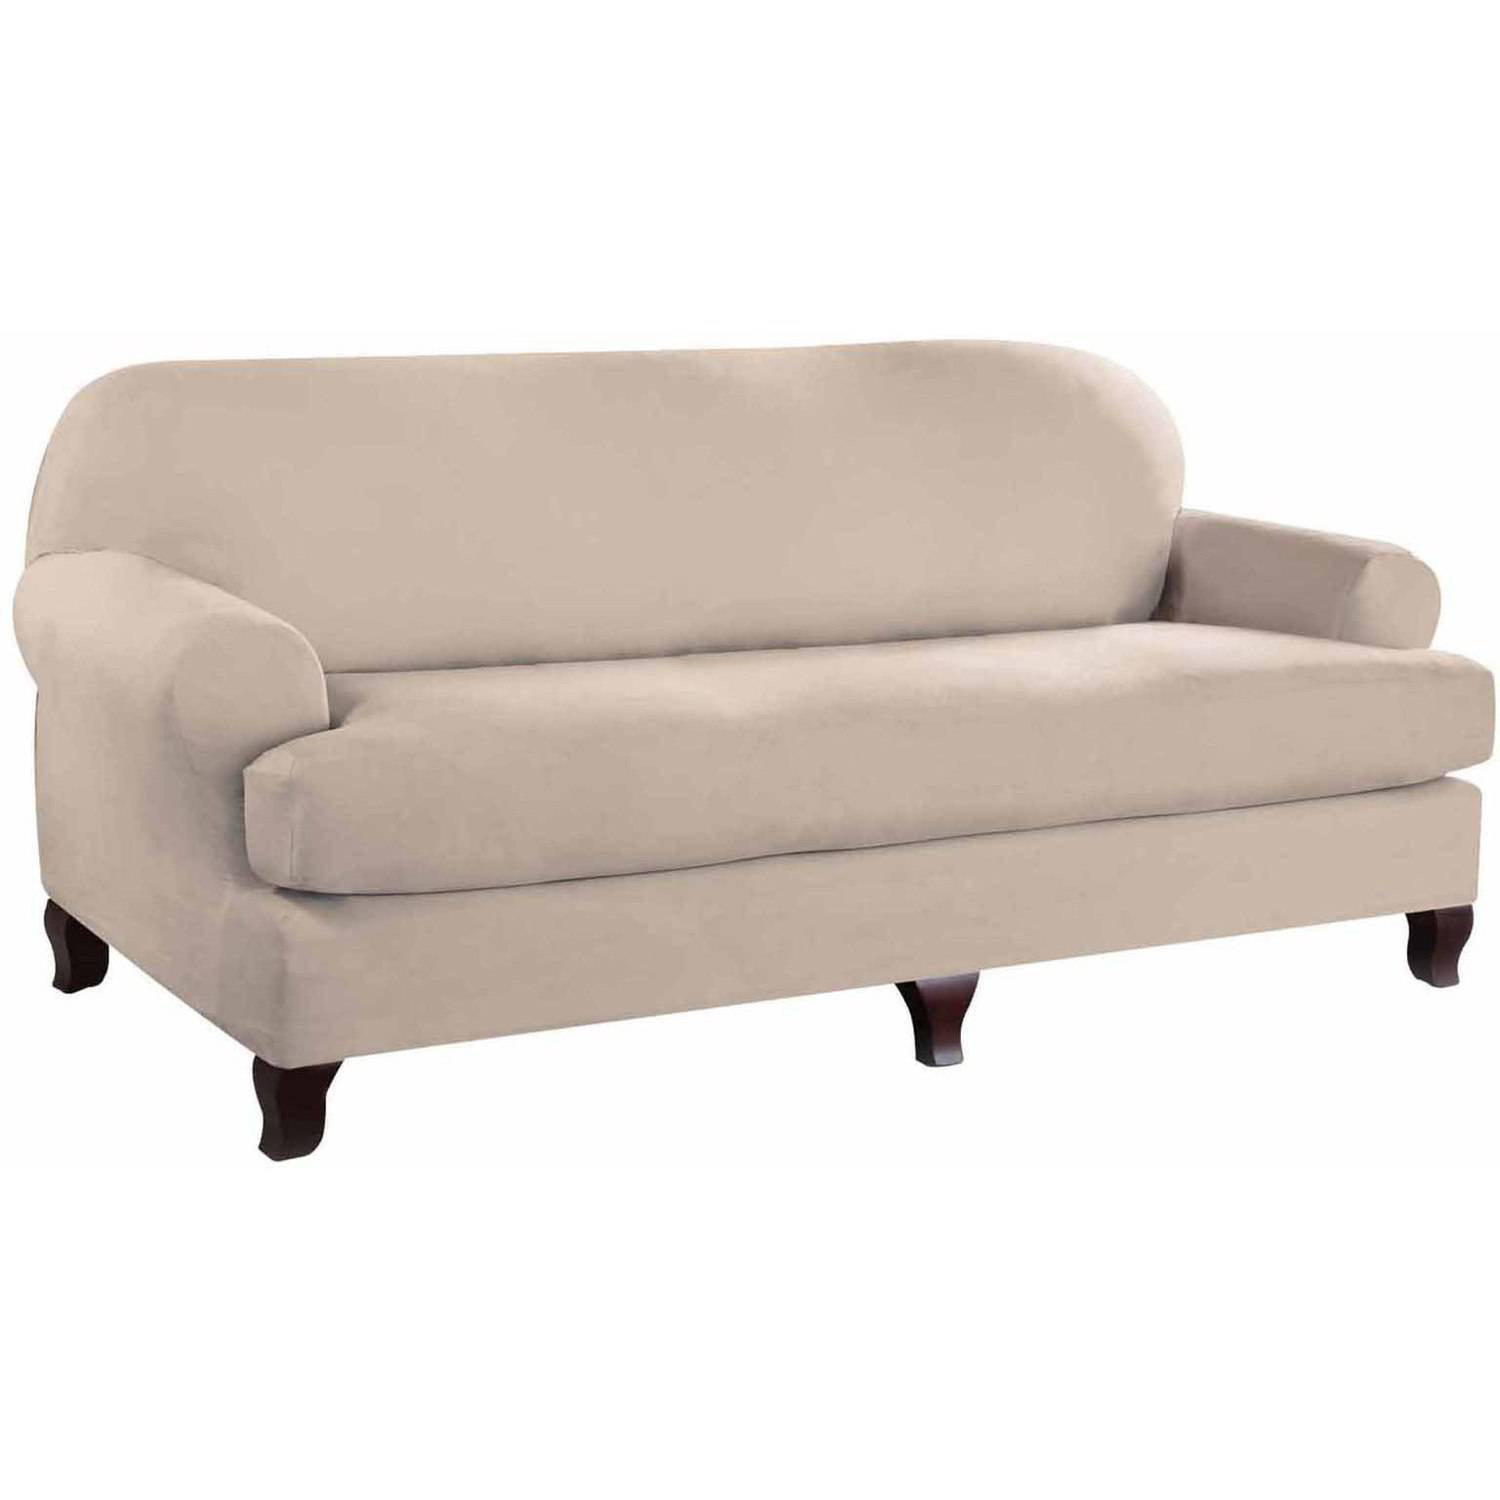 3 T Cushion Sofa Slipcover